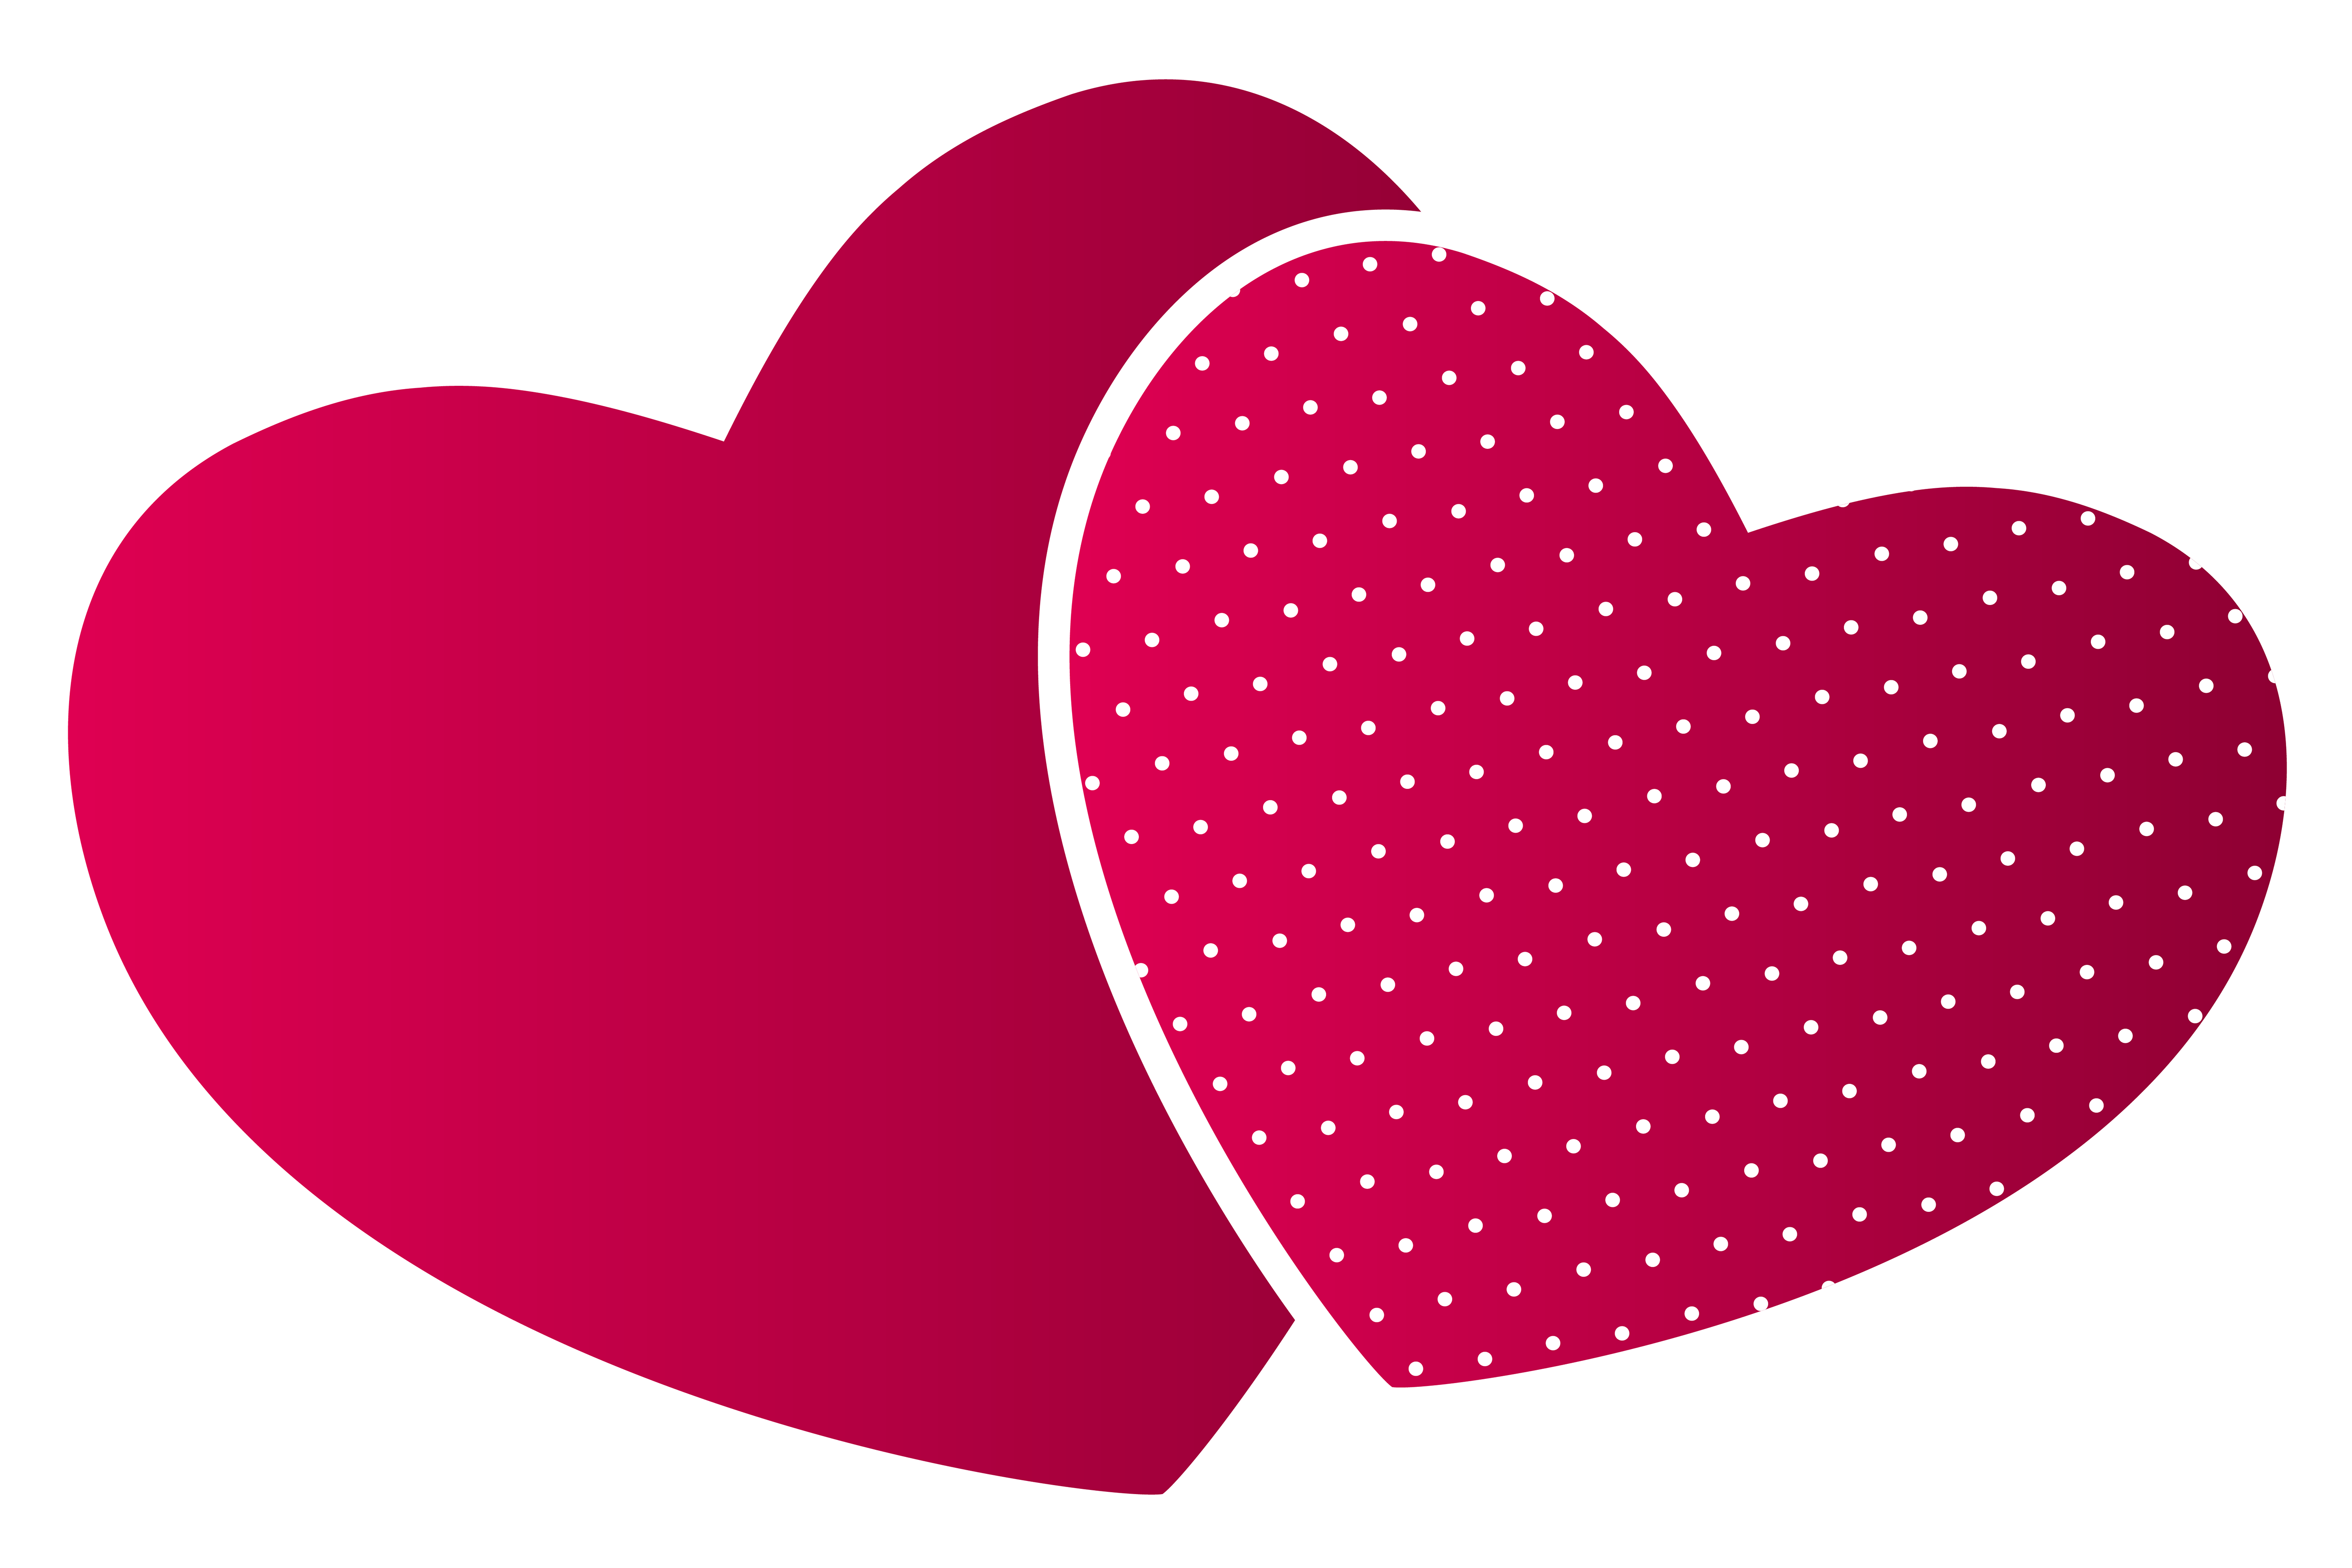 5000x3333 Double Hearts Png Clipart